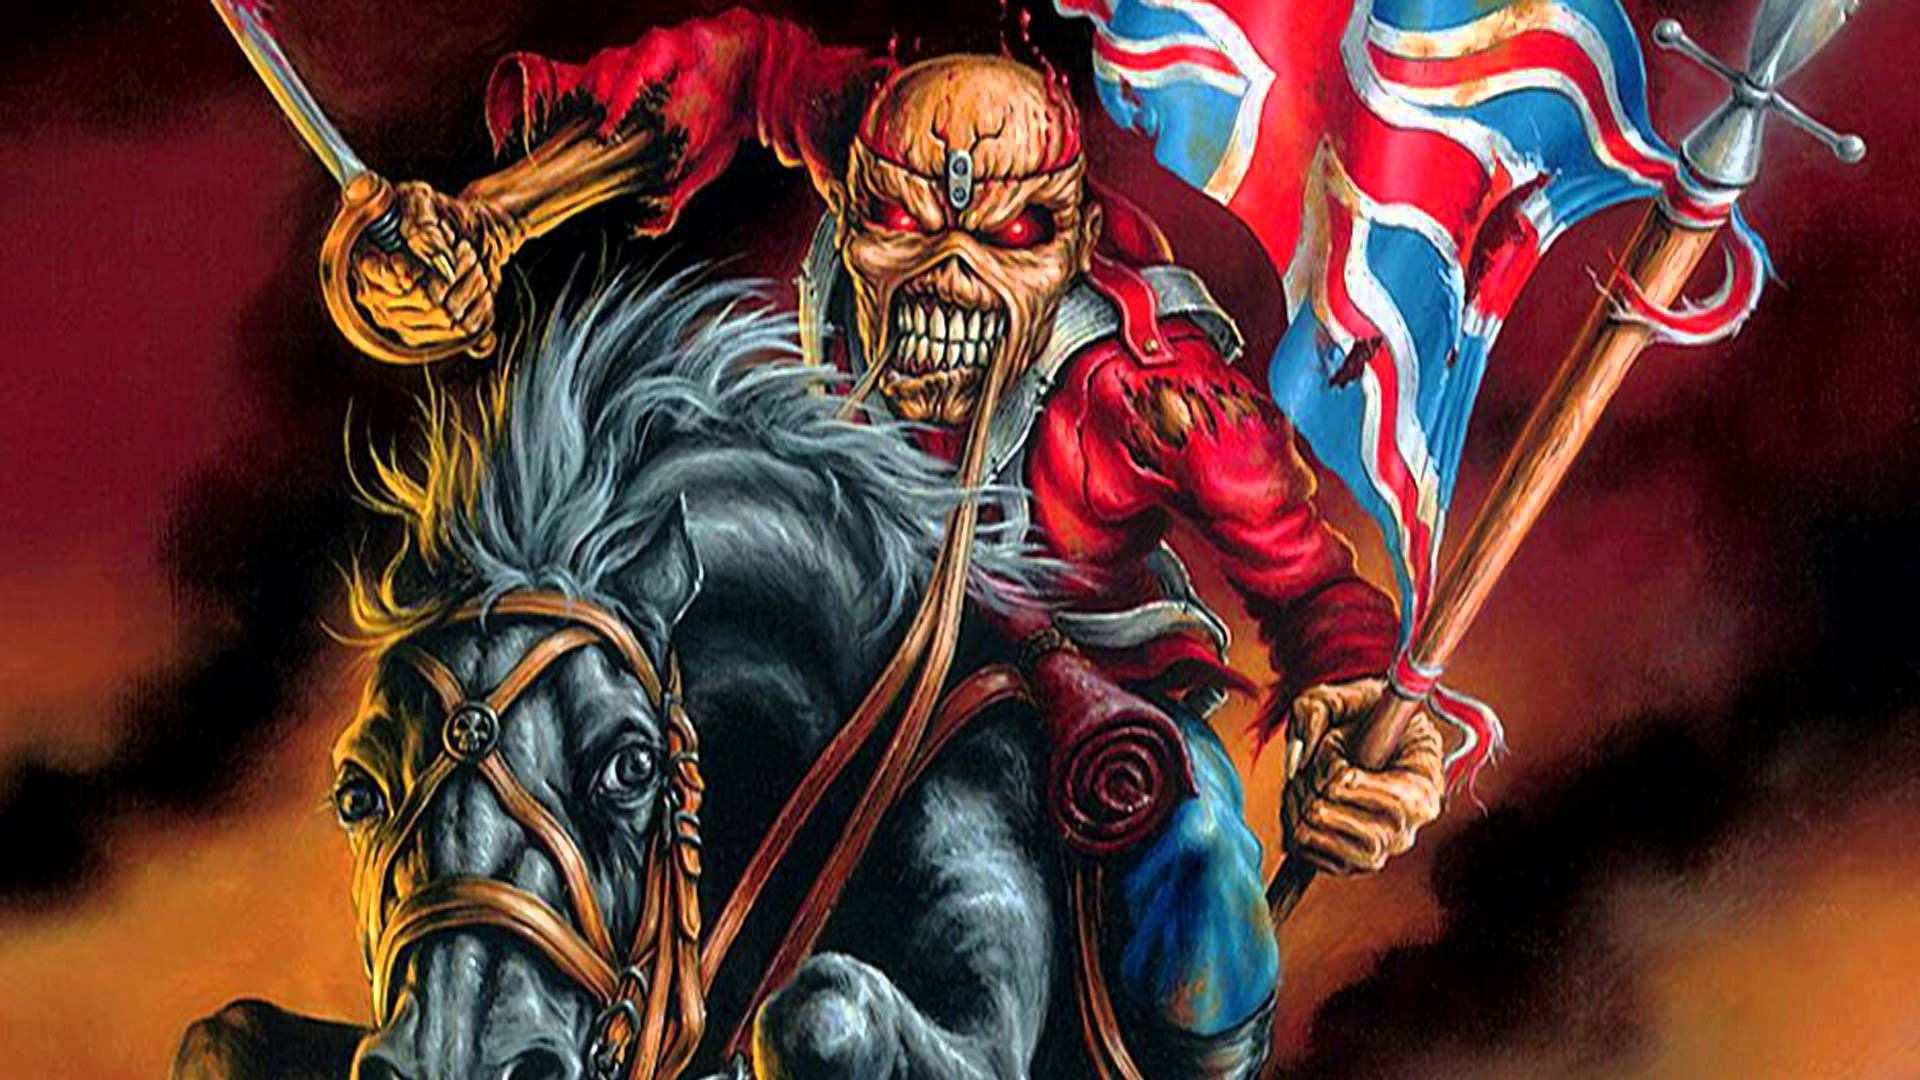 The Trooper Computer Wallpapers Desktop Backgrounds 1920x1200 Id 143357 Iron Maiden Albums Iron Maiden The Trooper Iron Maiden Posters